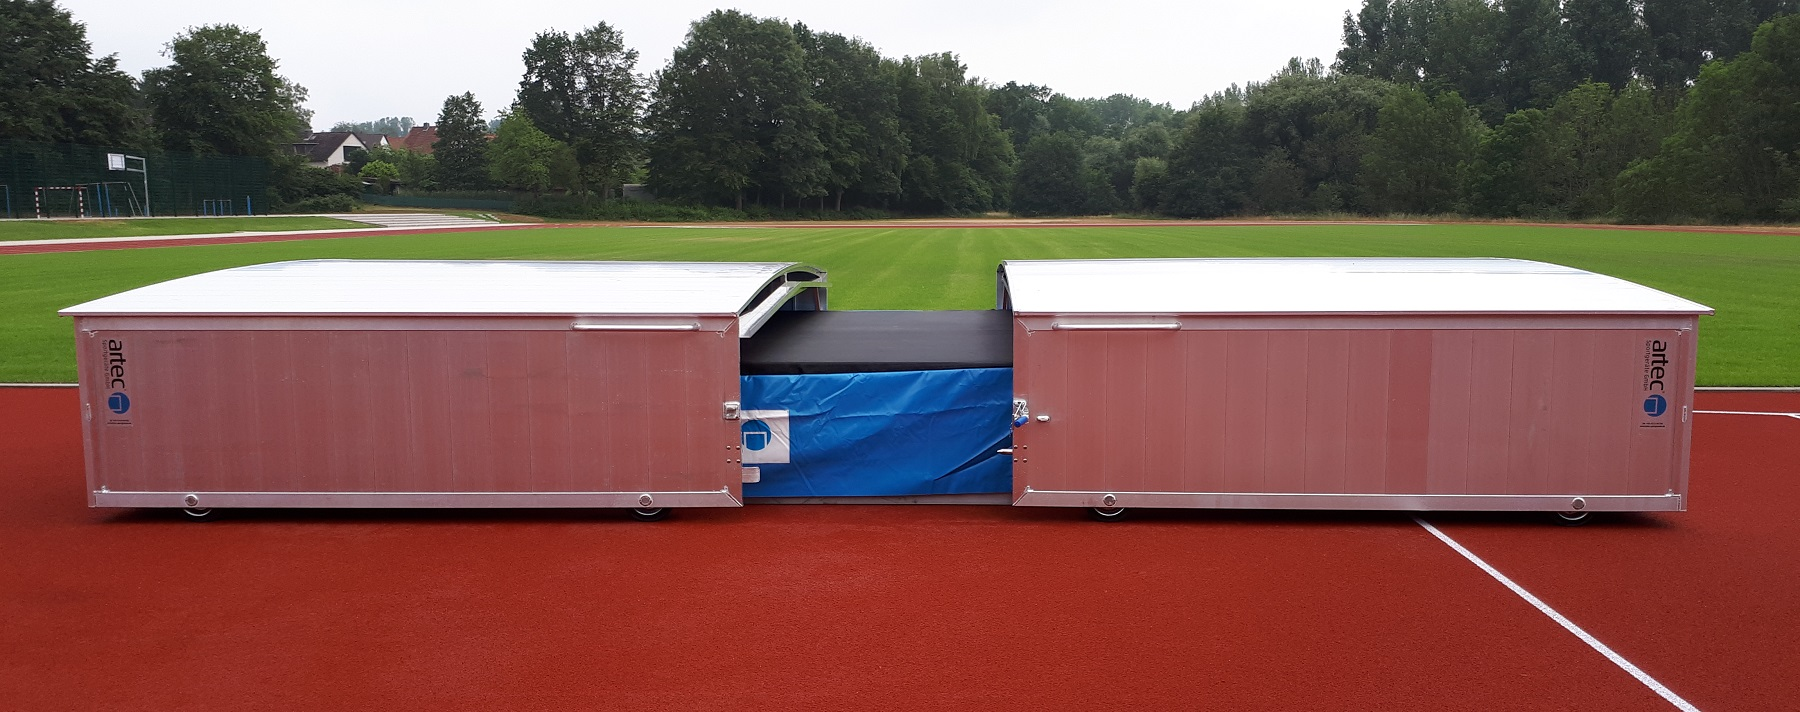 High jump facility IAAF certificate with safety and weahther cover